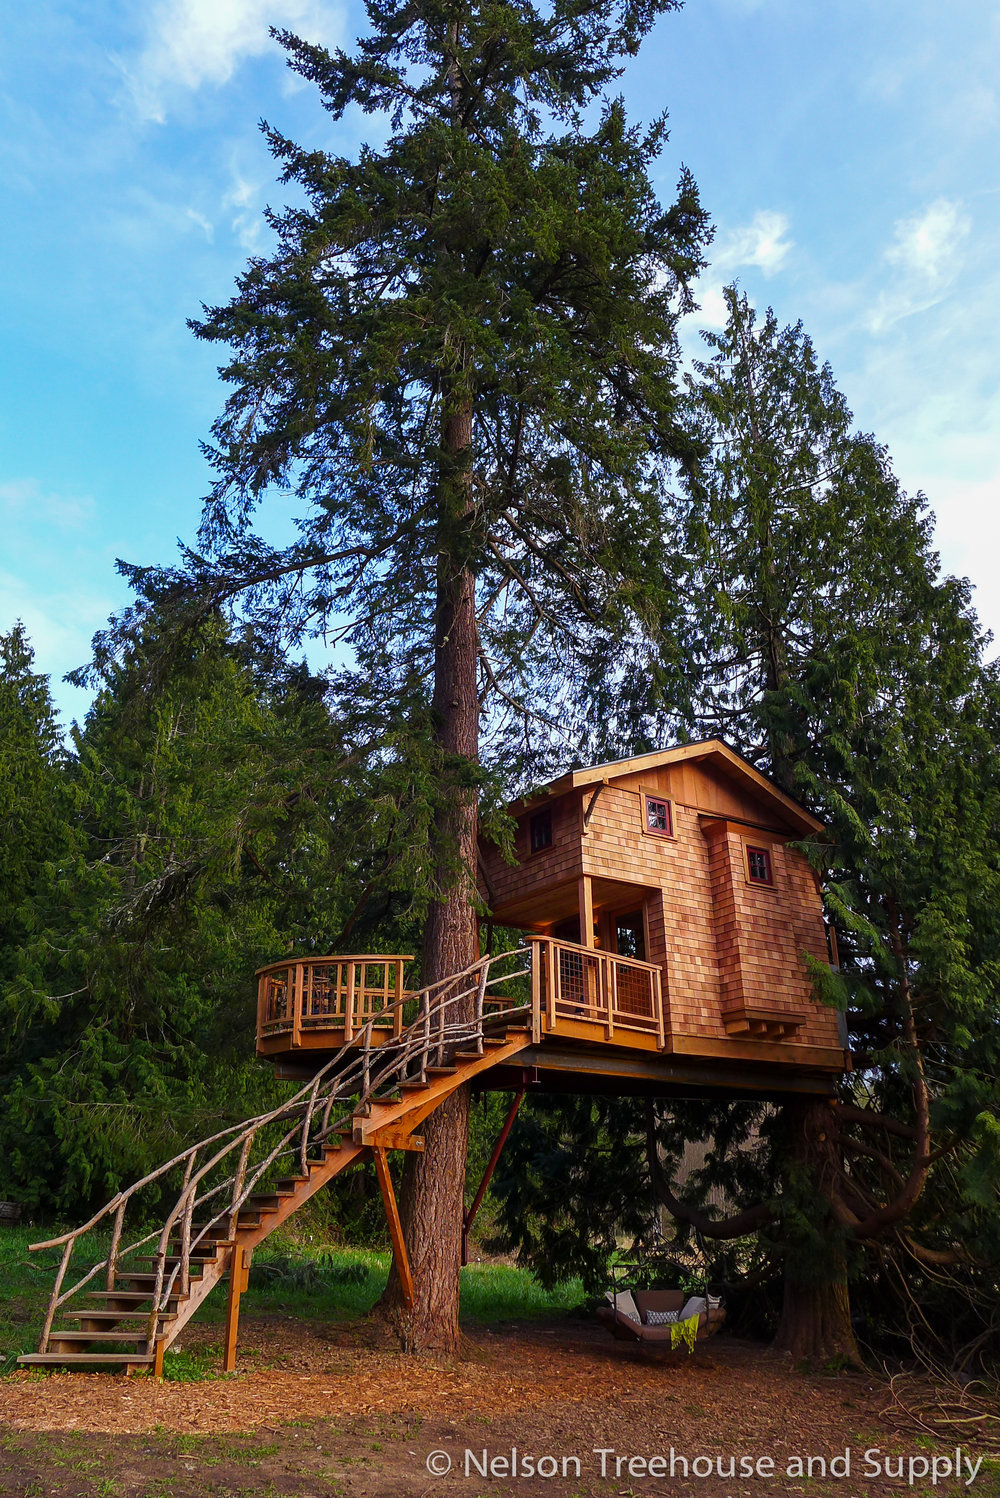 Working with my son Charlie on this treehouse at  treehouse resort and spa  was a dream come true.